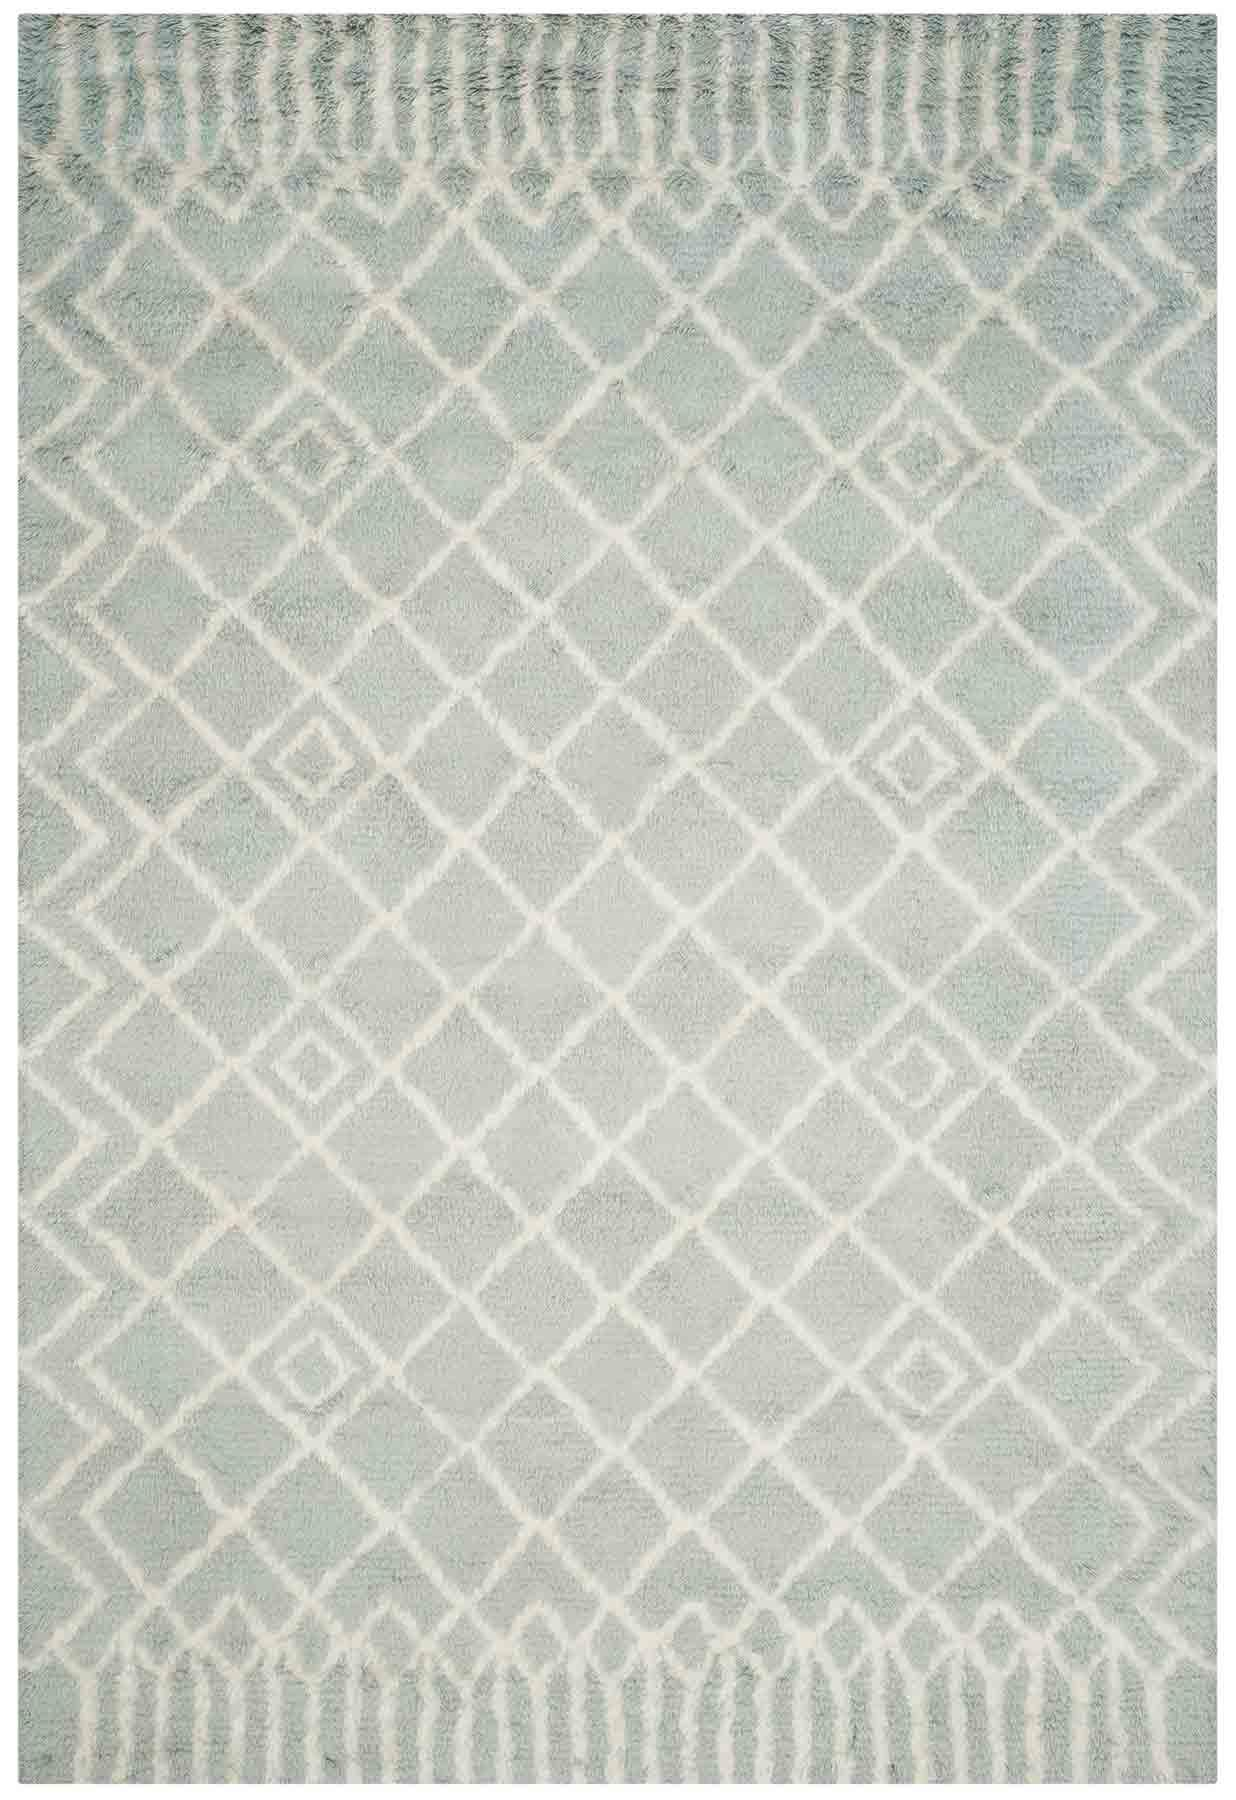 Rug Csb894b Casablanca Area Rugs By Safavieh